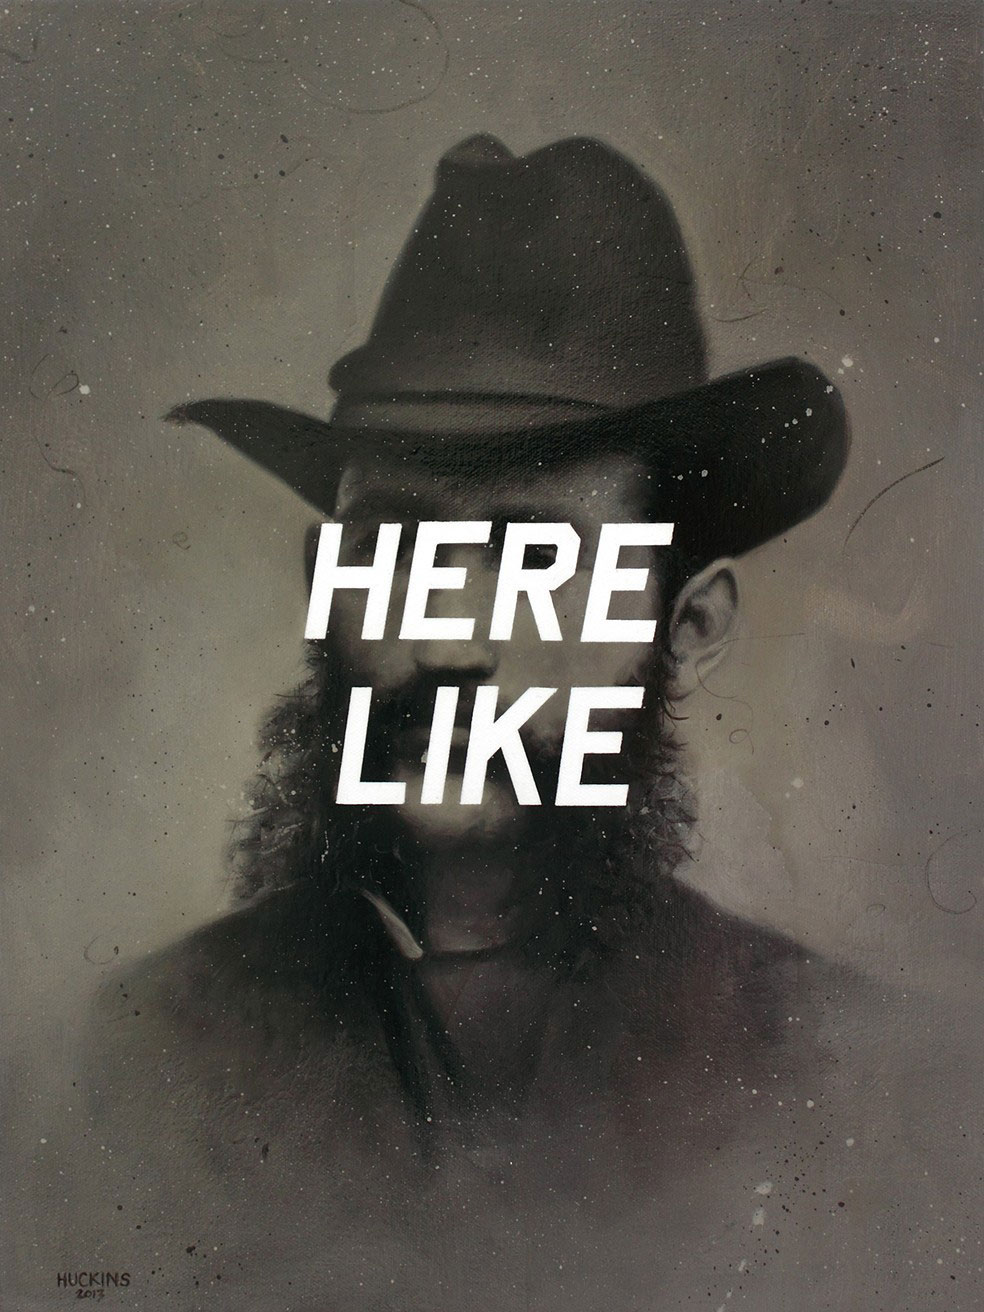 Shawn Huckins, Cornelius C. Kenney: Here Like, acrylic on canvas w/ patina varnish, 16 x 12 in (41 x 30 cm), 2013. Private collection, London.